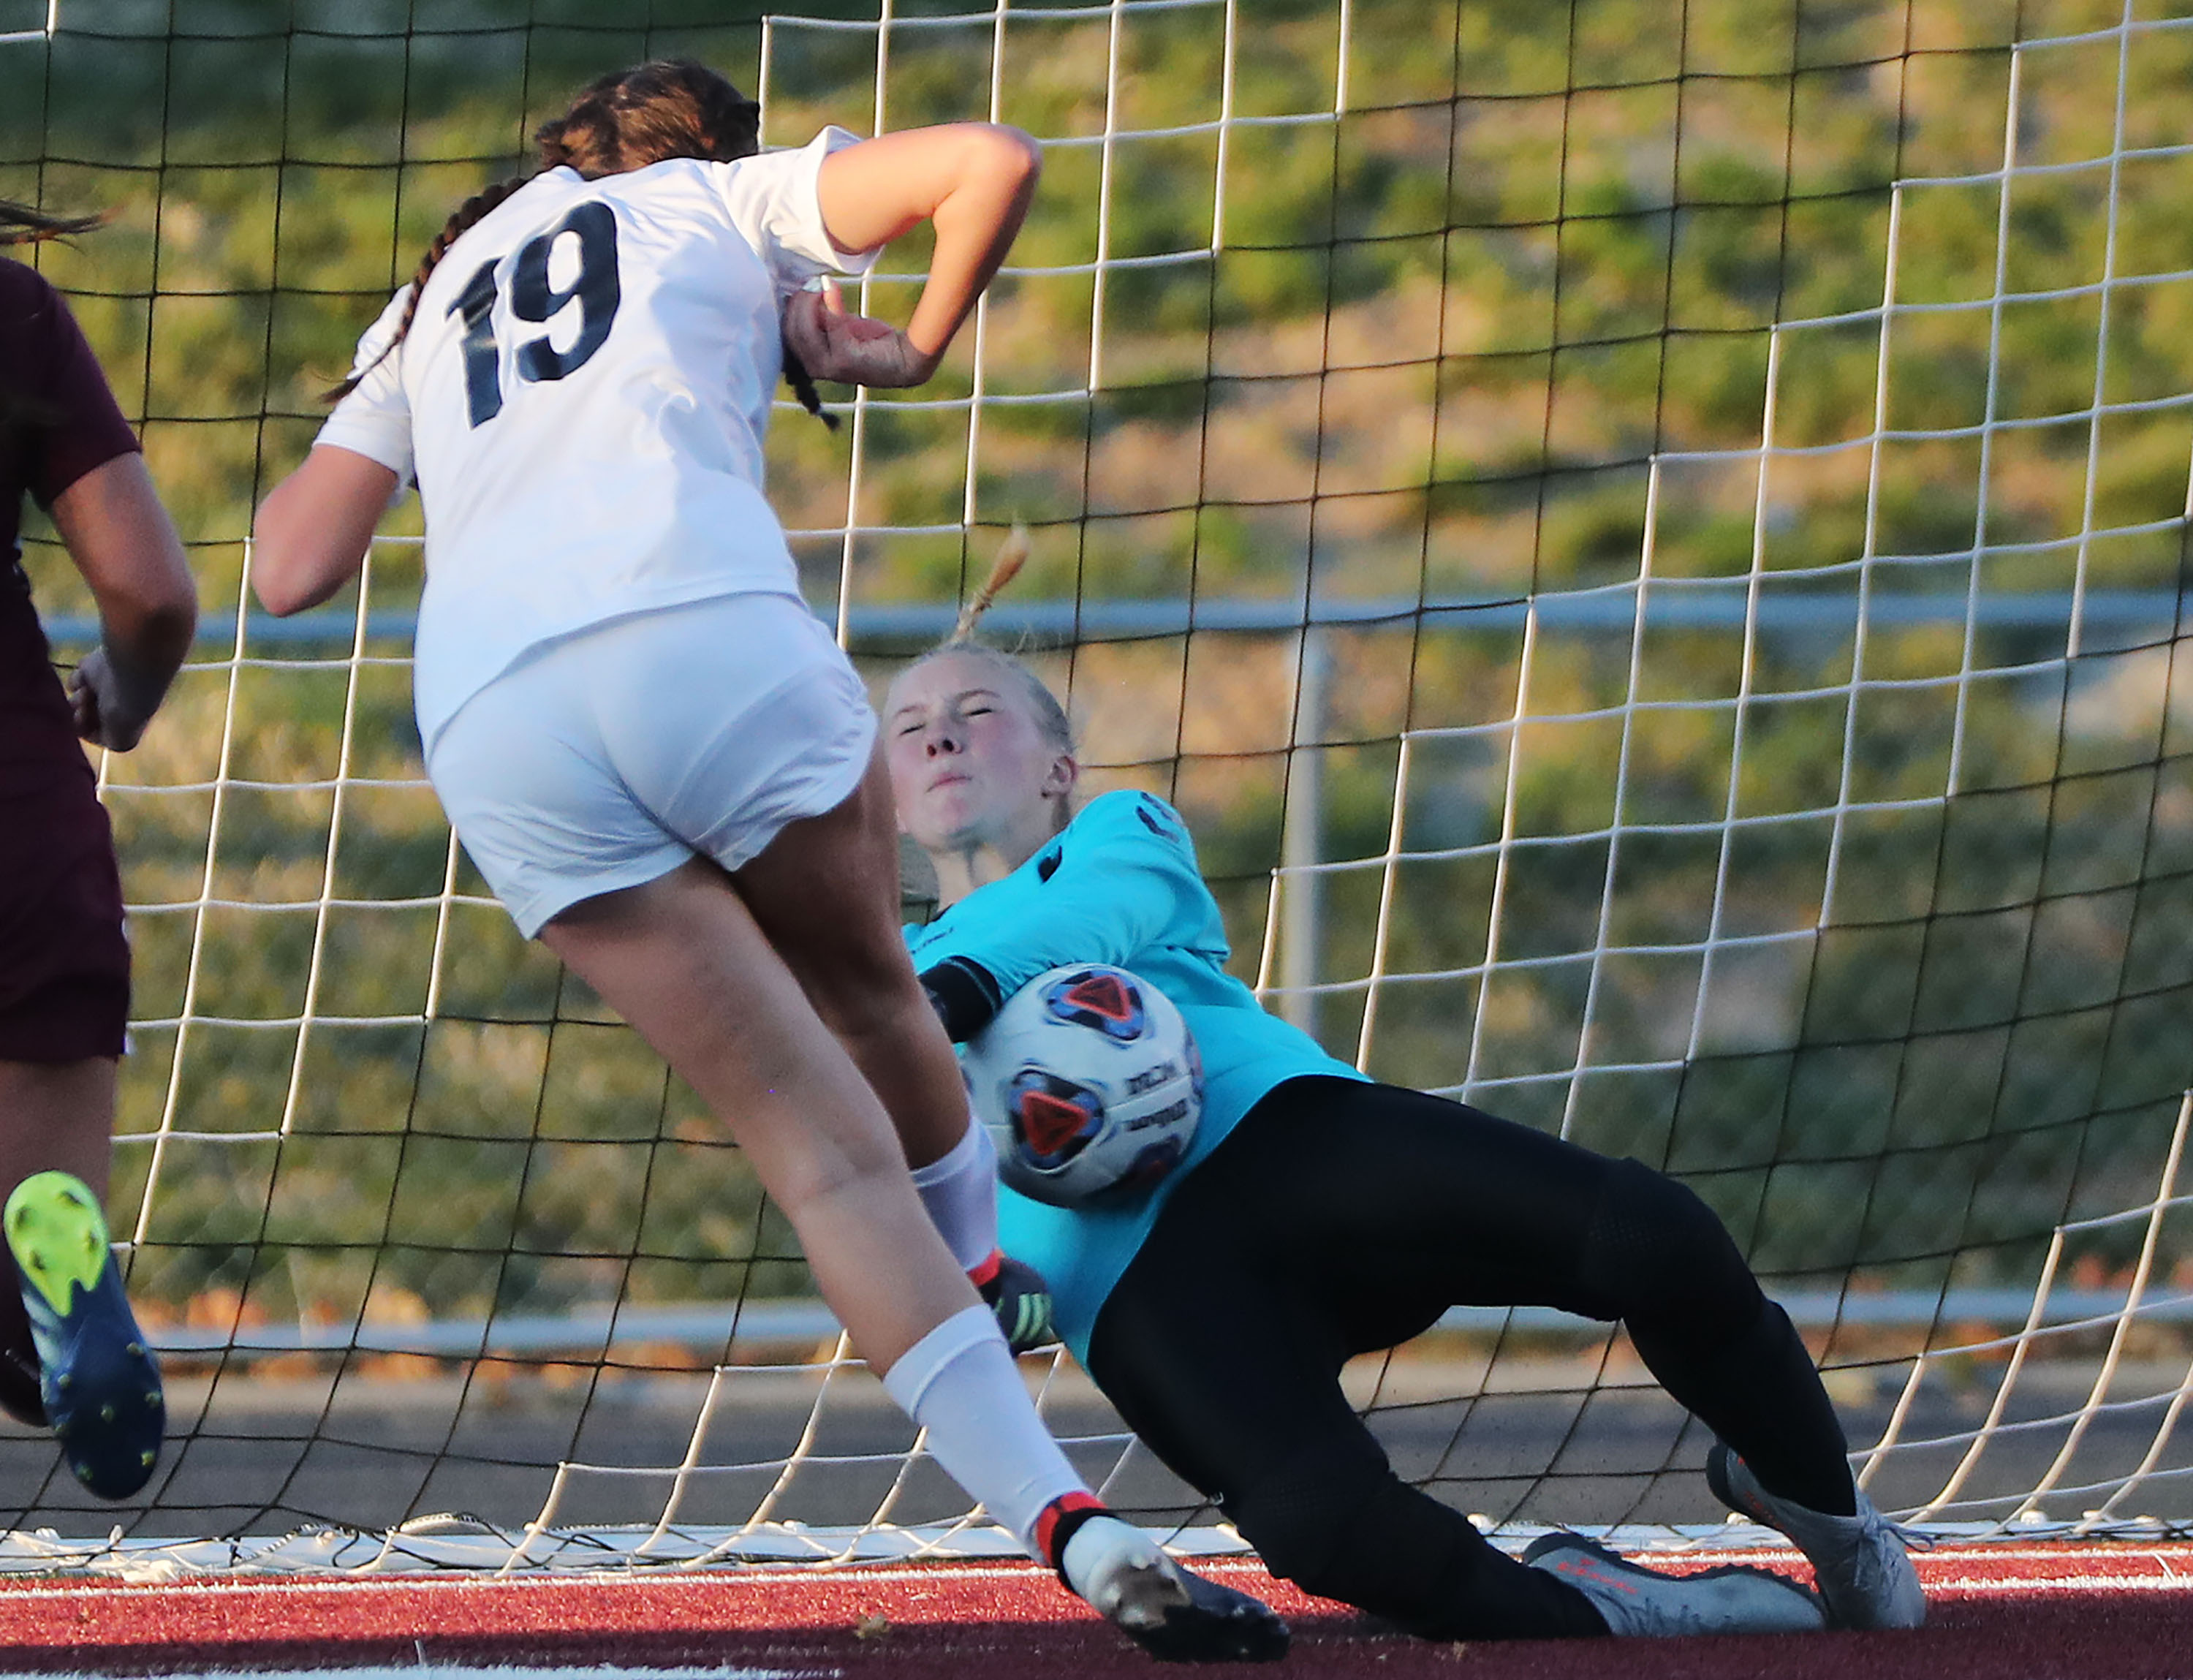 Morgan and RSL Academy play in the 3A girls soccer semifinals in Sandy on Thursday, Oct. 21, 2021. Morgan won 2-1.